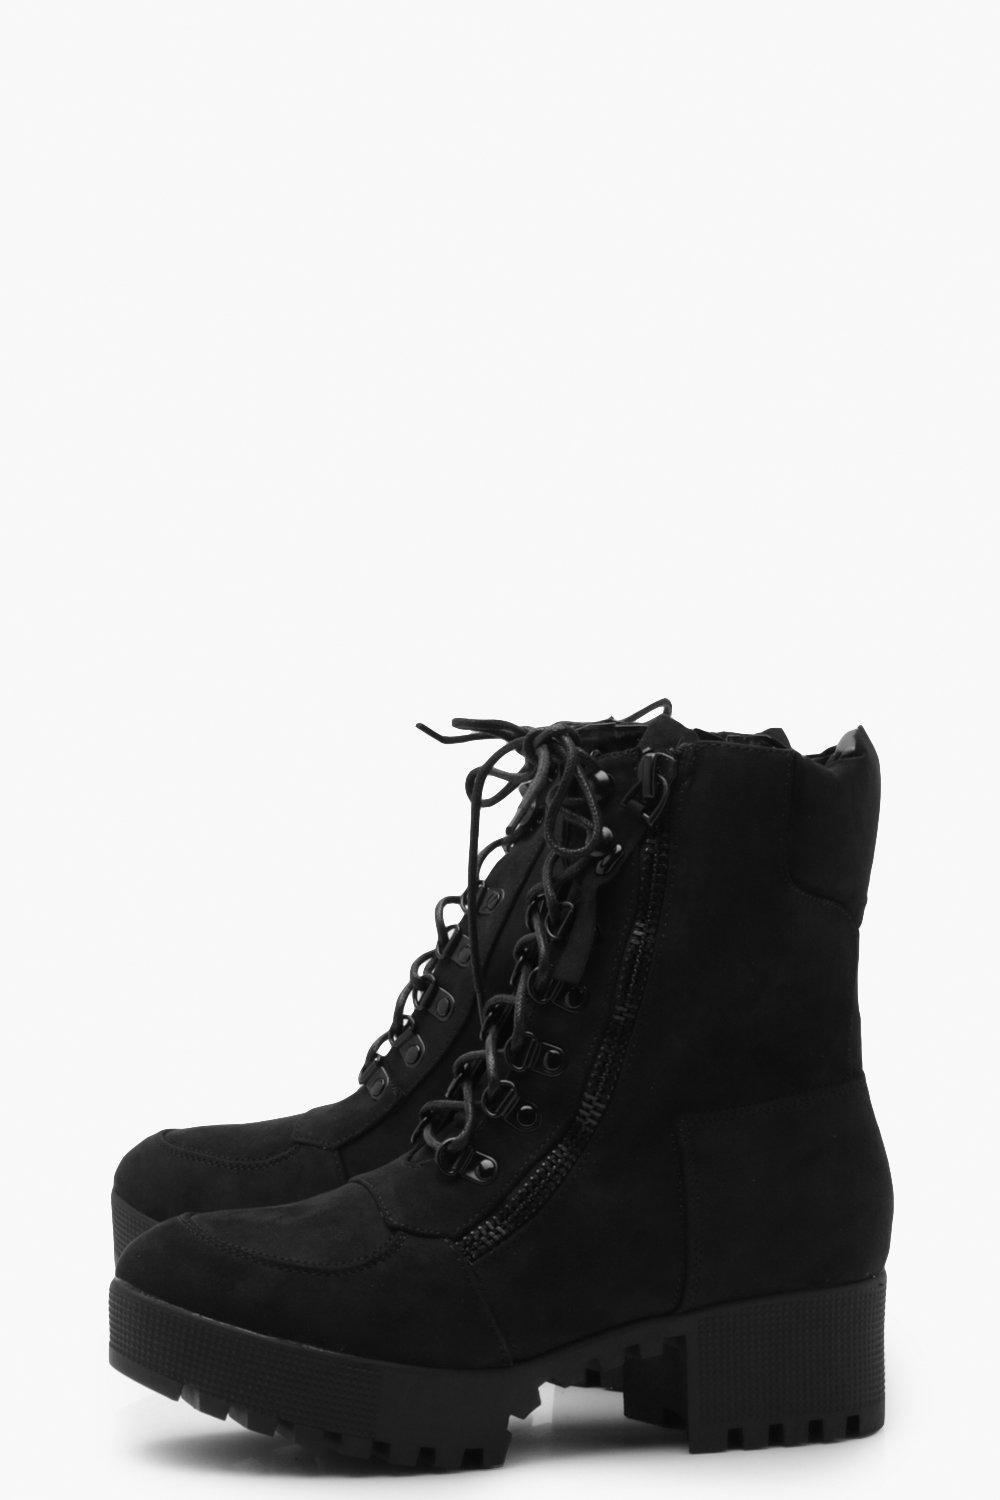 873721c827 ... Chunky Zip And Lace Up Hiker Boots - Lyst. View fullscreen